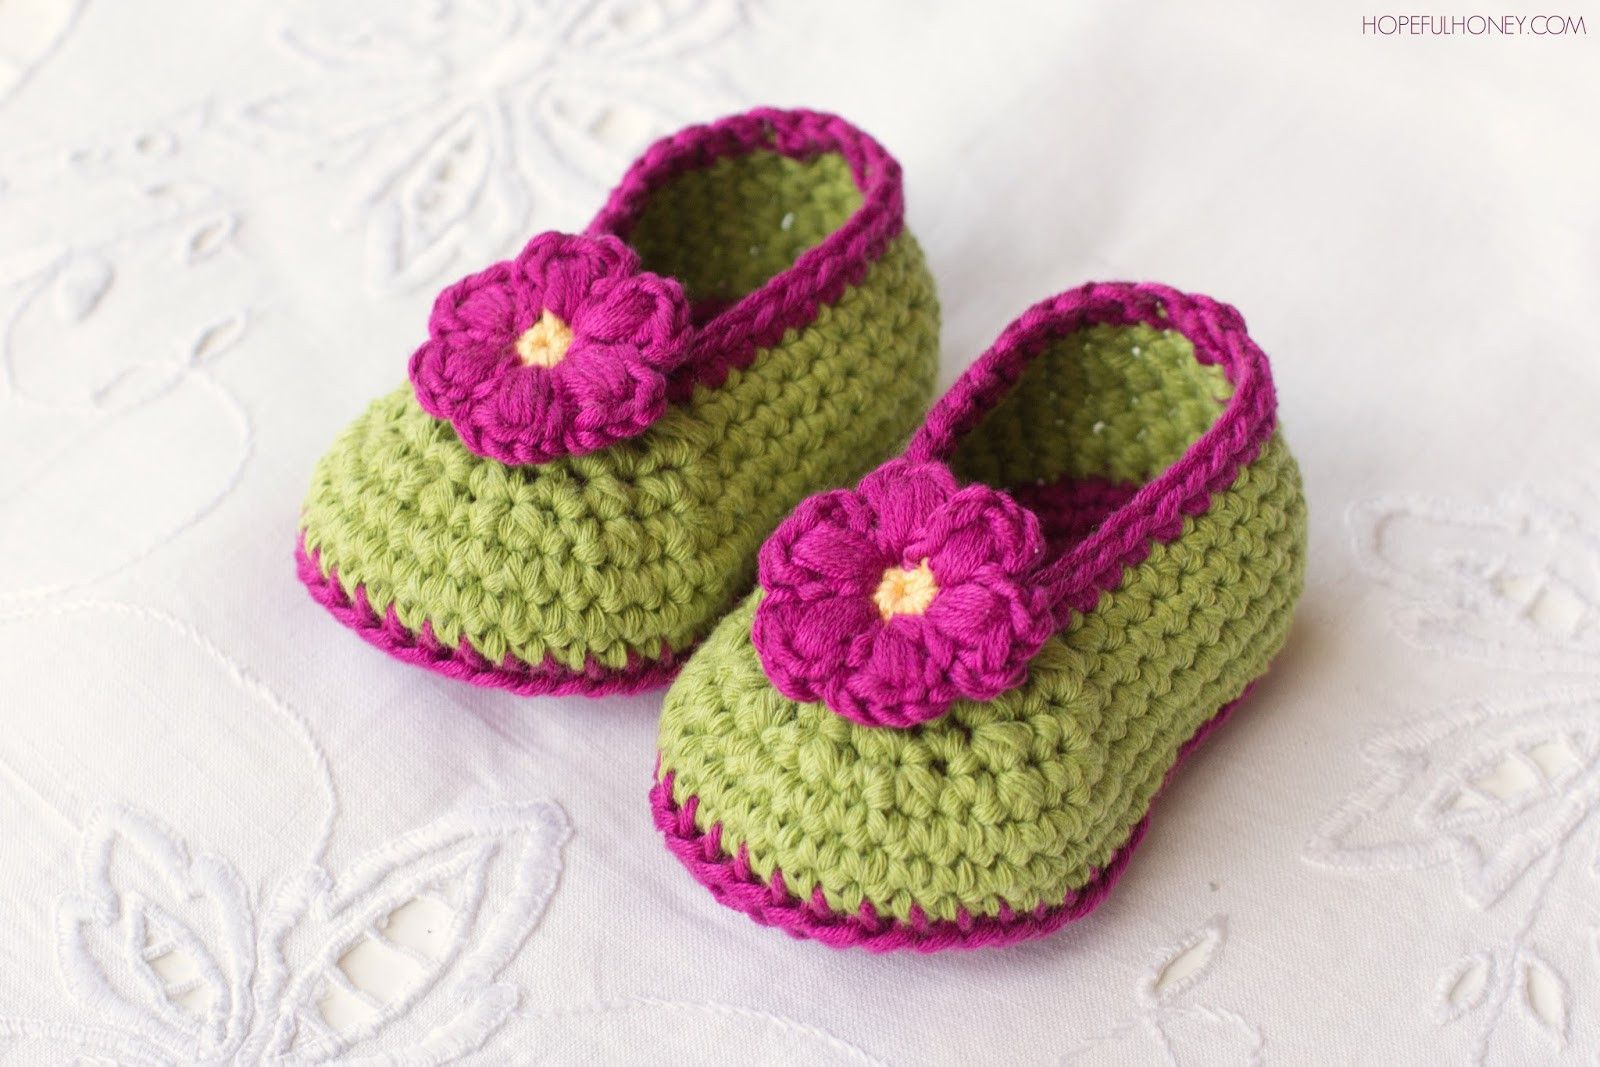 Awesome Free Crochet Pattern for toddler Slippers Free Crochet Patterns for Newborns Of Unique 40 Photos Free Crochet Patterns for Newborns #minioncrochetpatterns Awesome Free Crochet Pattern for toddler Slippers Free Crochet Patterns for Newborns Of Unique 40 Photos Free Crochet Patterns for Newborns #minioncrochetpatterns